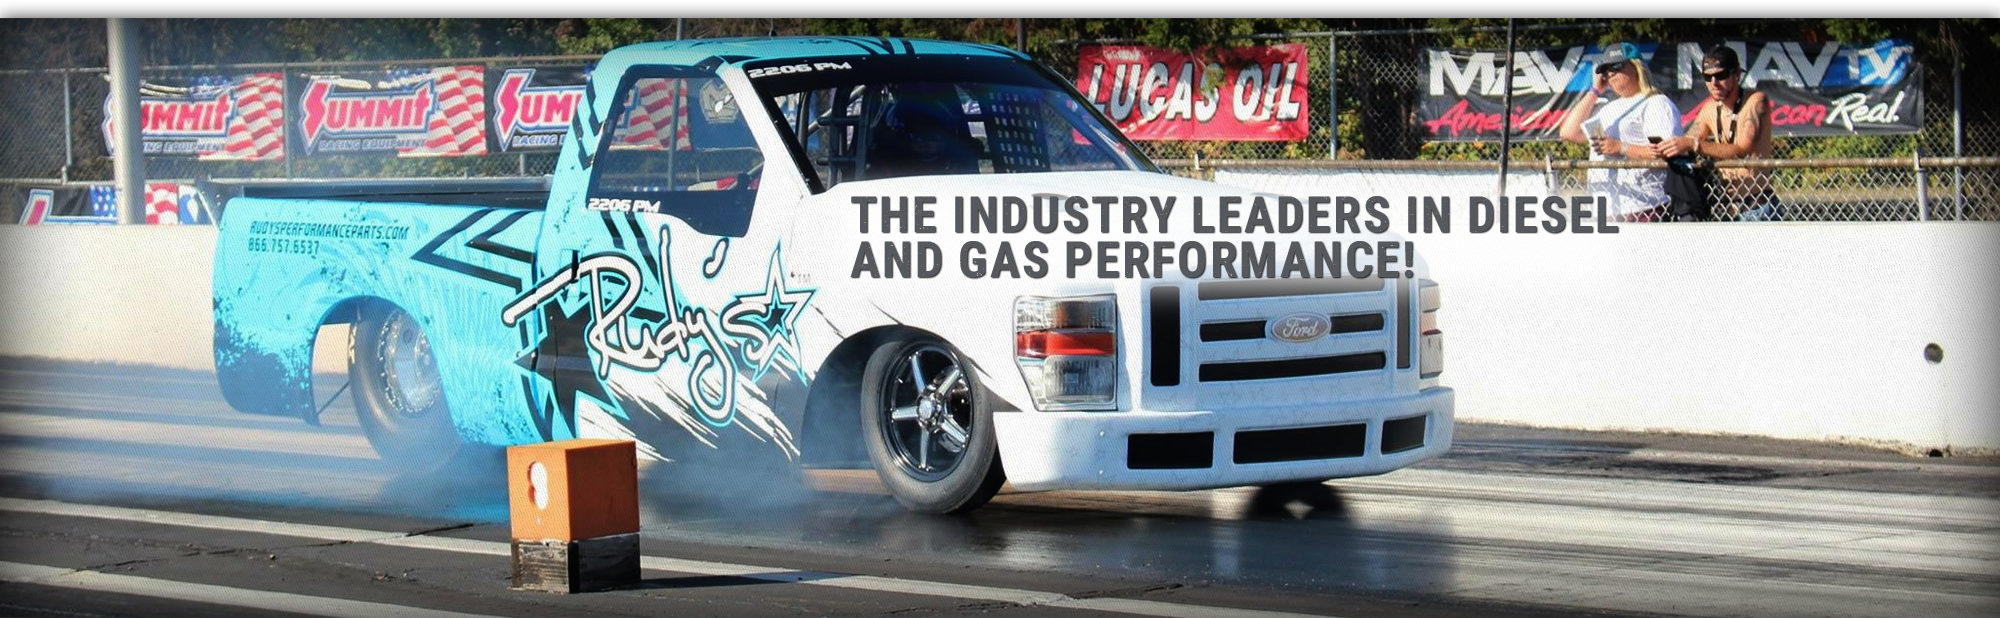 The industry leaders in diesel AND gas performance!